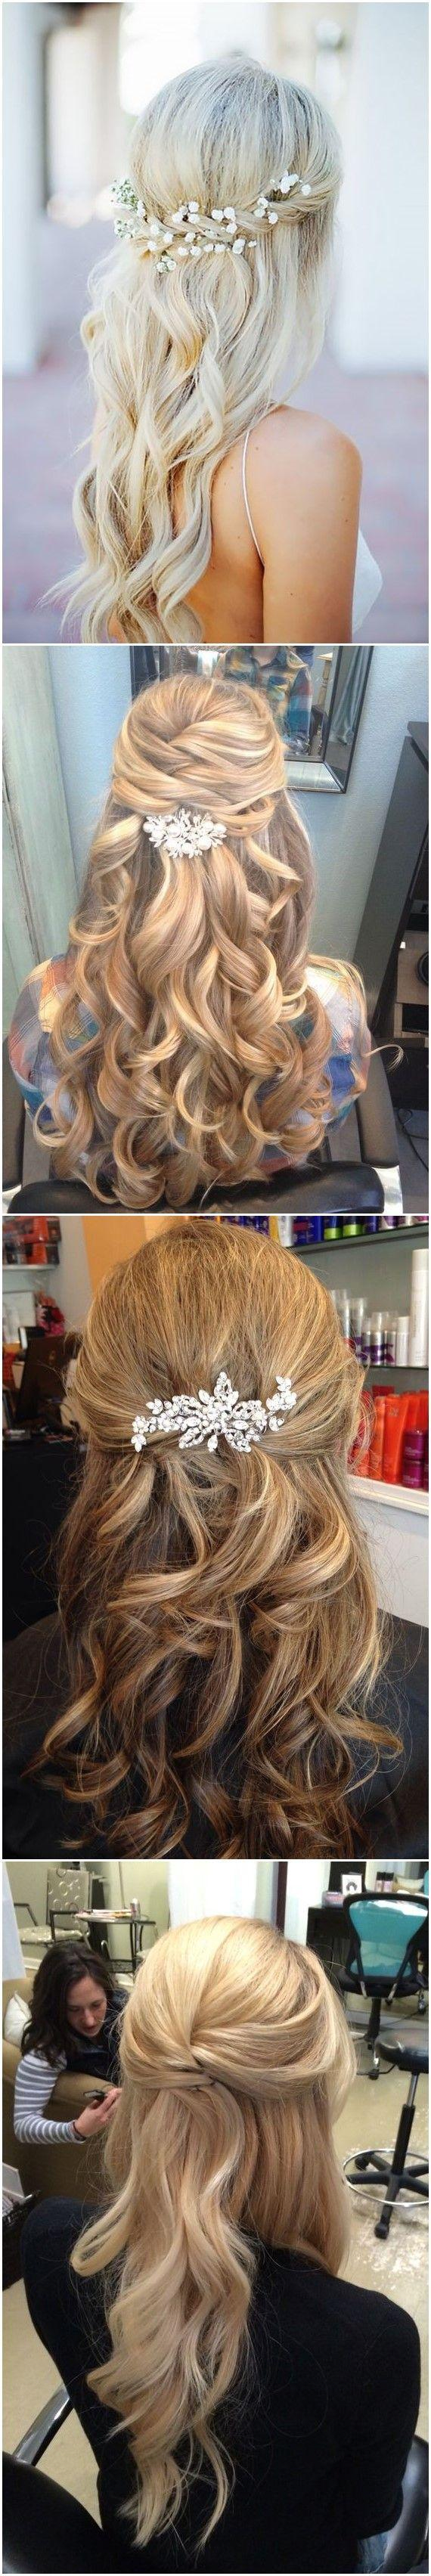 Wedding - 22 Half Up And Half Down Wedding Hairstyles To Get You Inspired